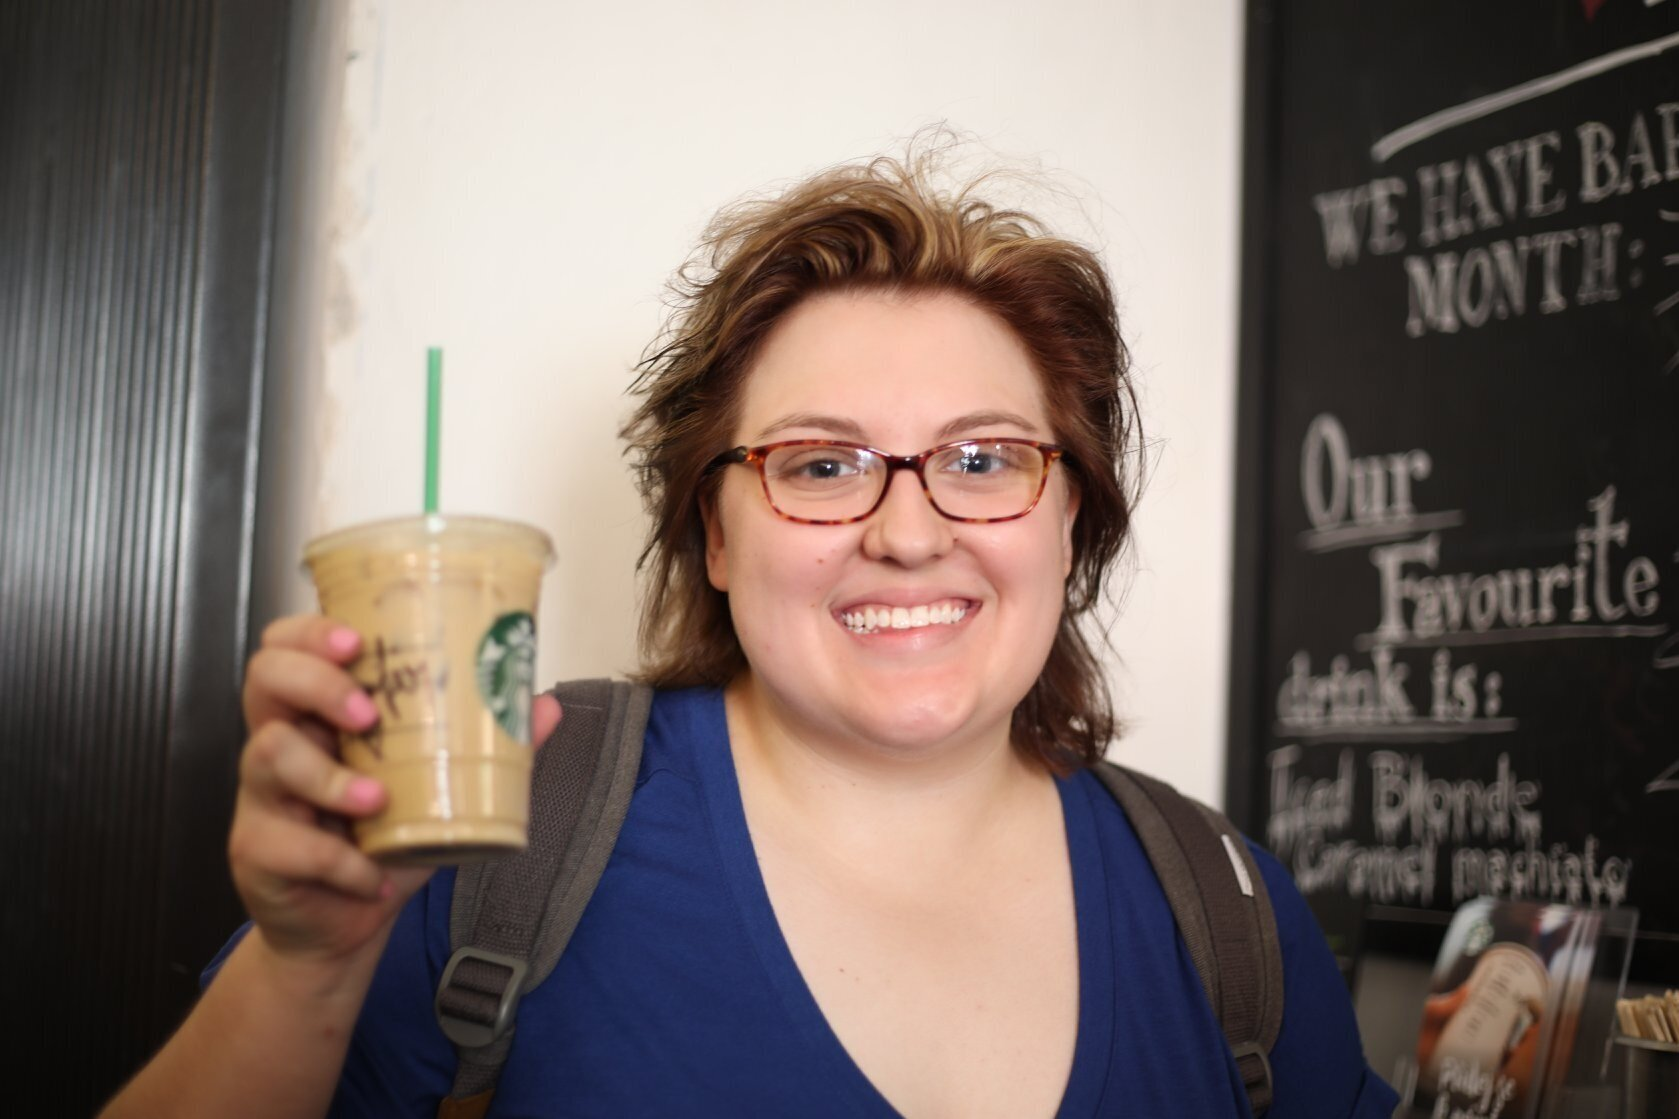 Coffee is life, right? - Jenni may or may not have a little bit of a problem. And by that I mean she definitely does… she even ordered her iced latte in Prague!